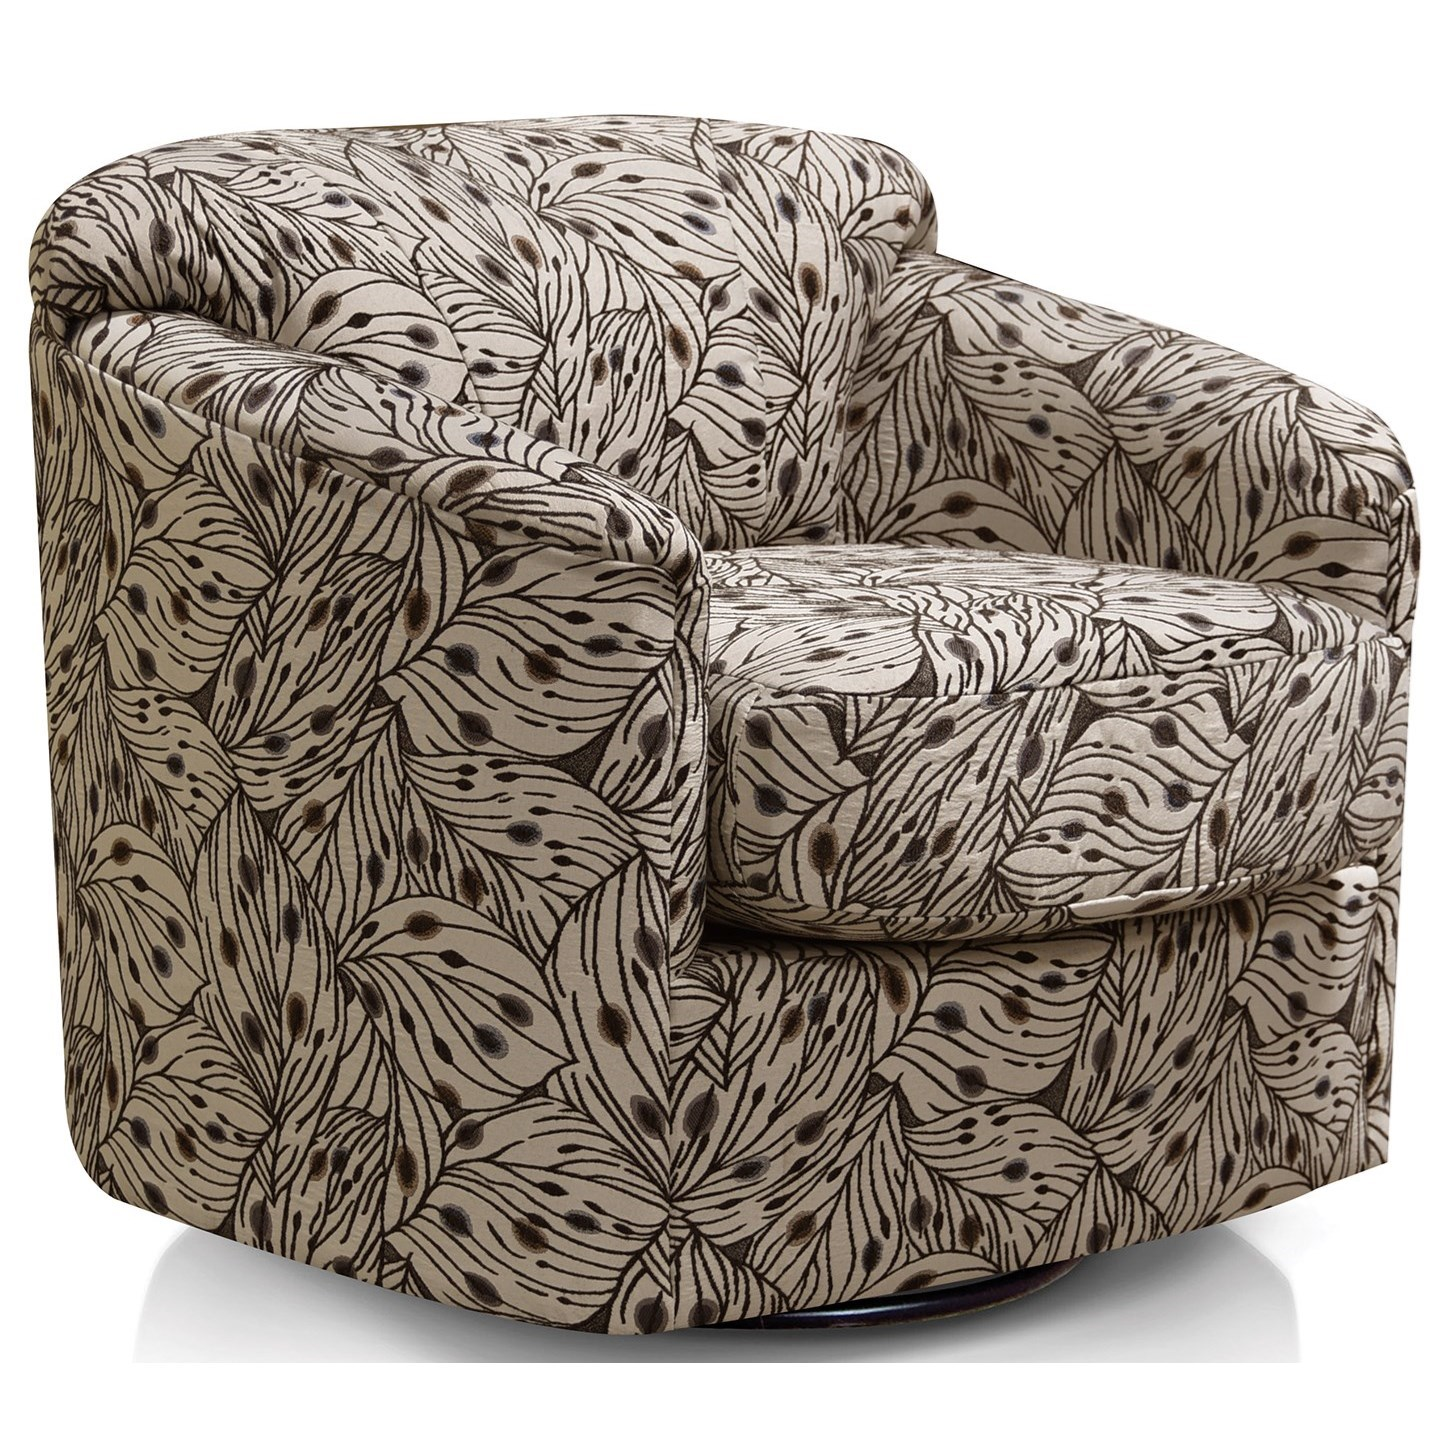 V995 Swivel Glider Chair by Alexvale at Northeast Factory Direct